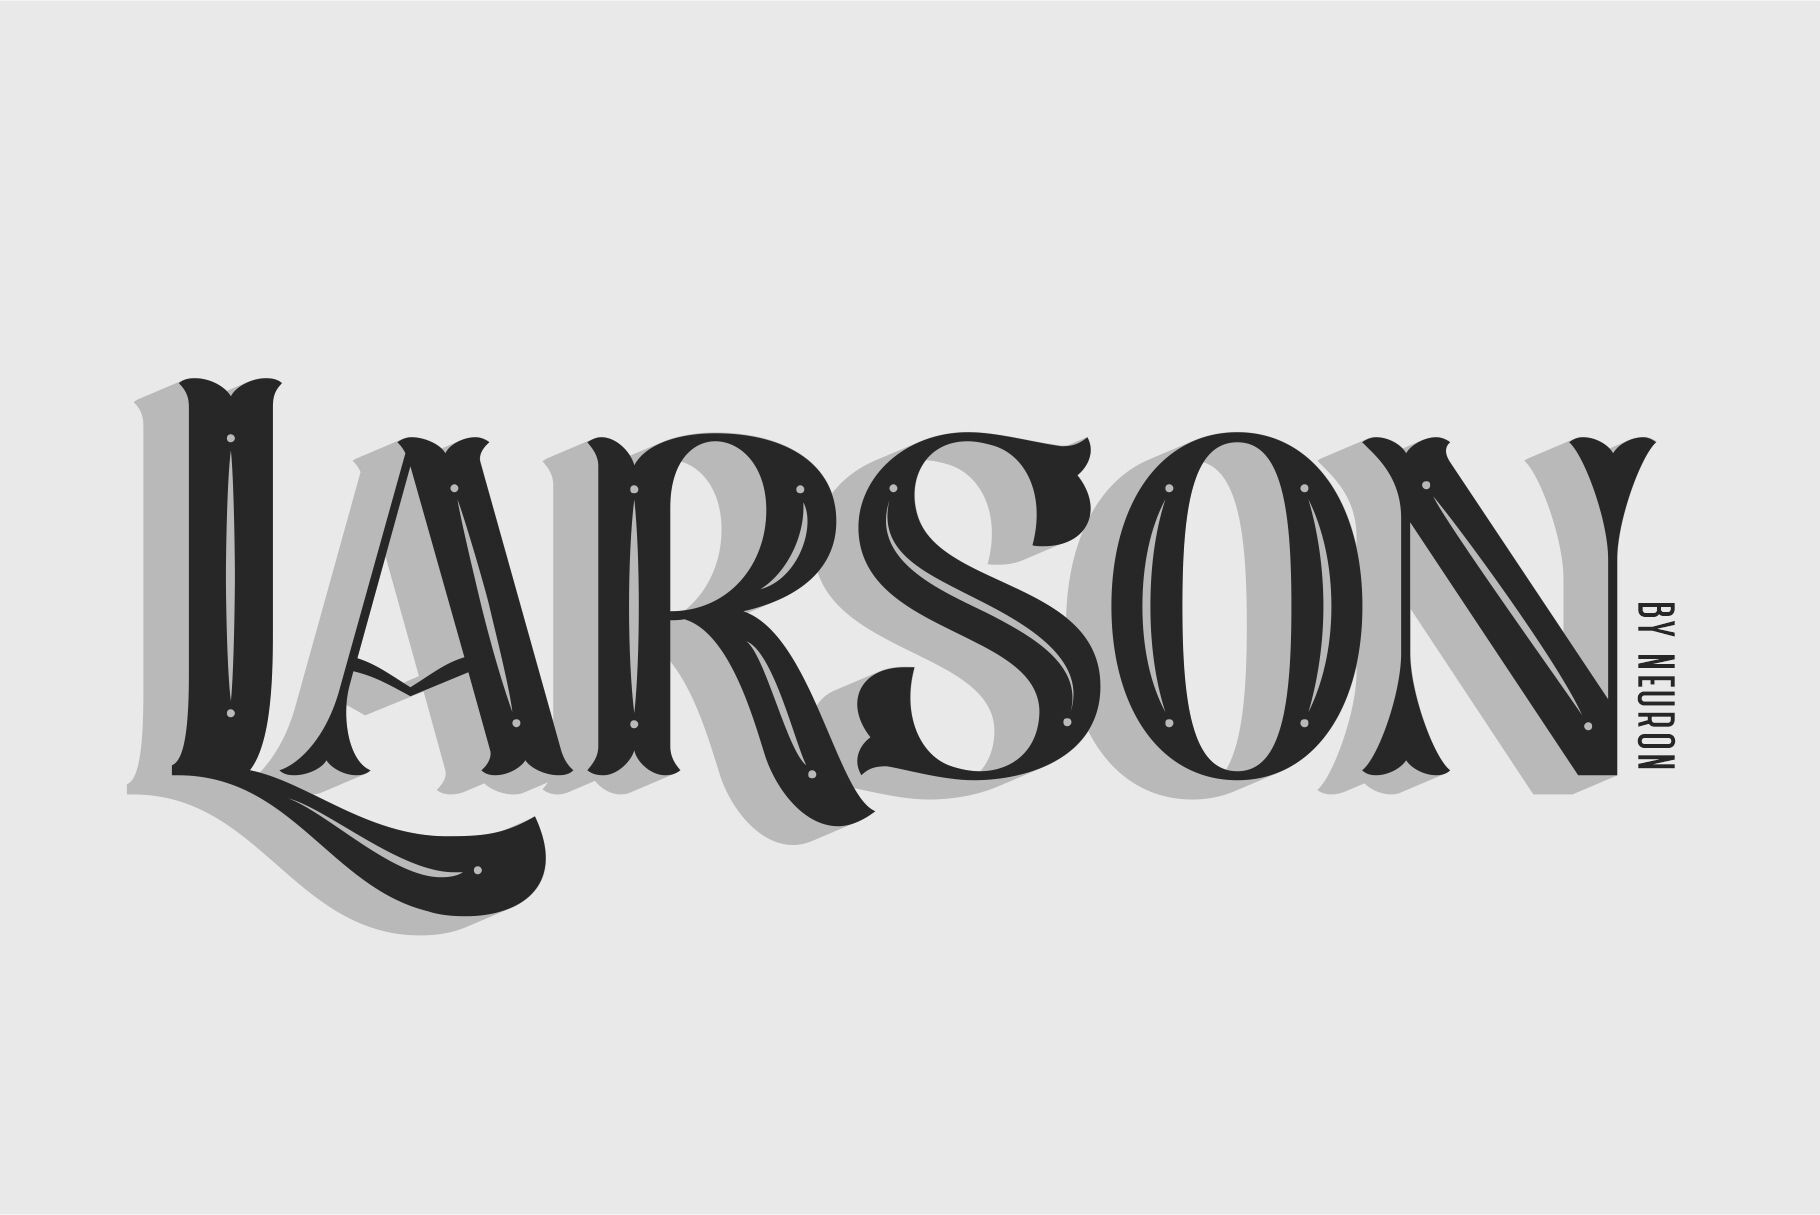 Larson Decorative Display Font By Neuron Thehungryjpeg Com